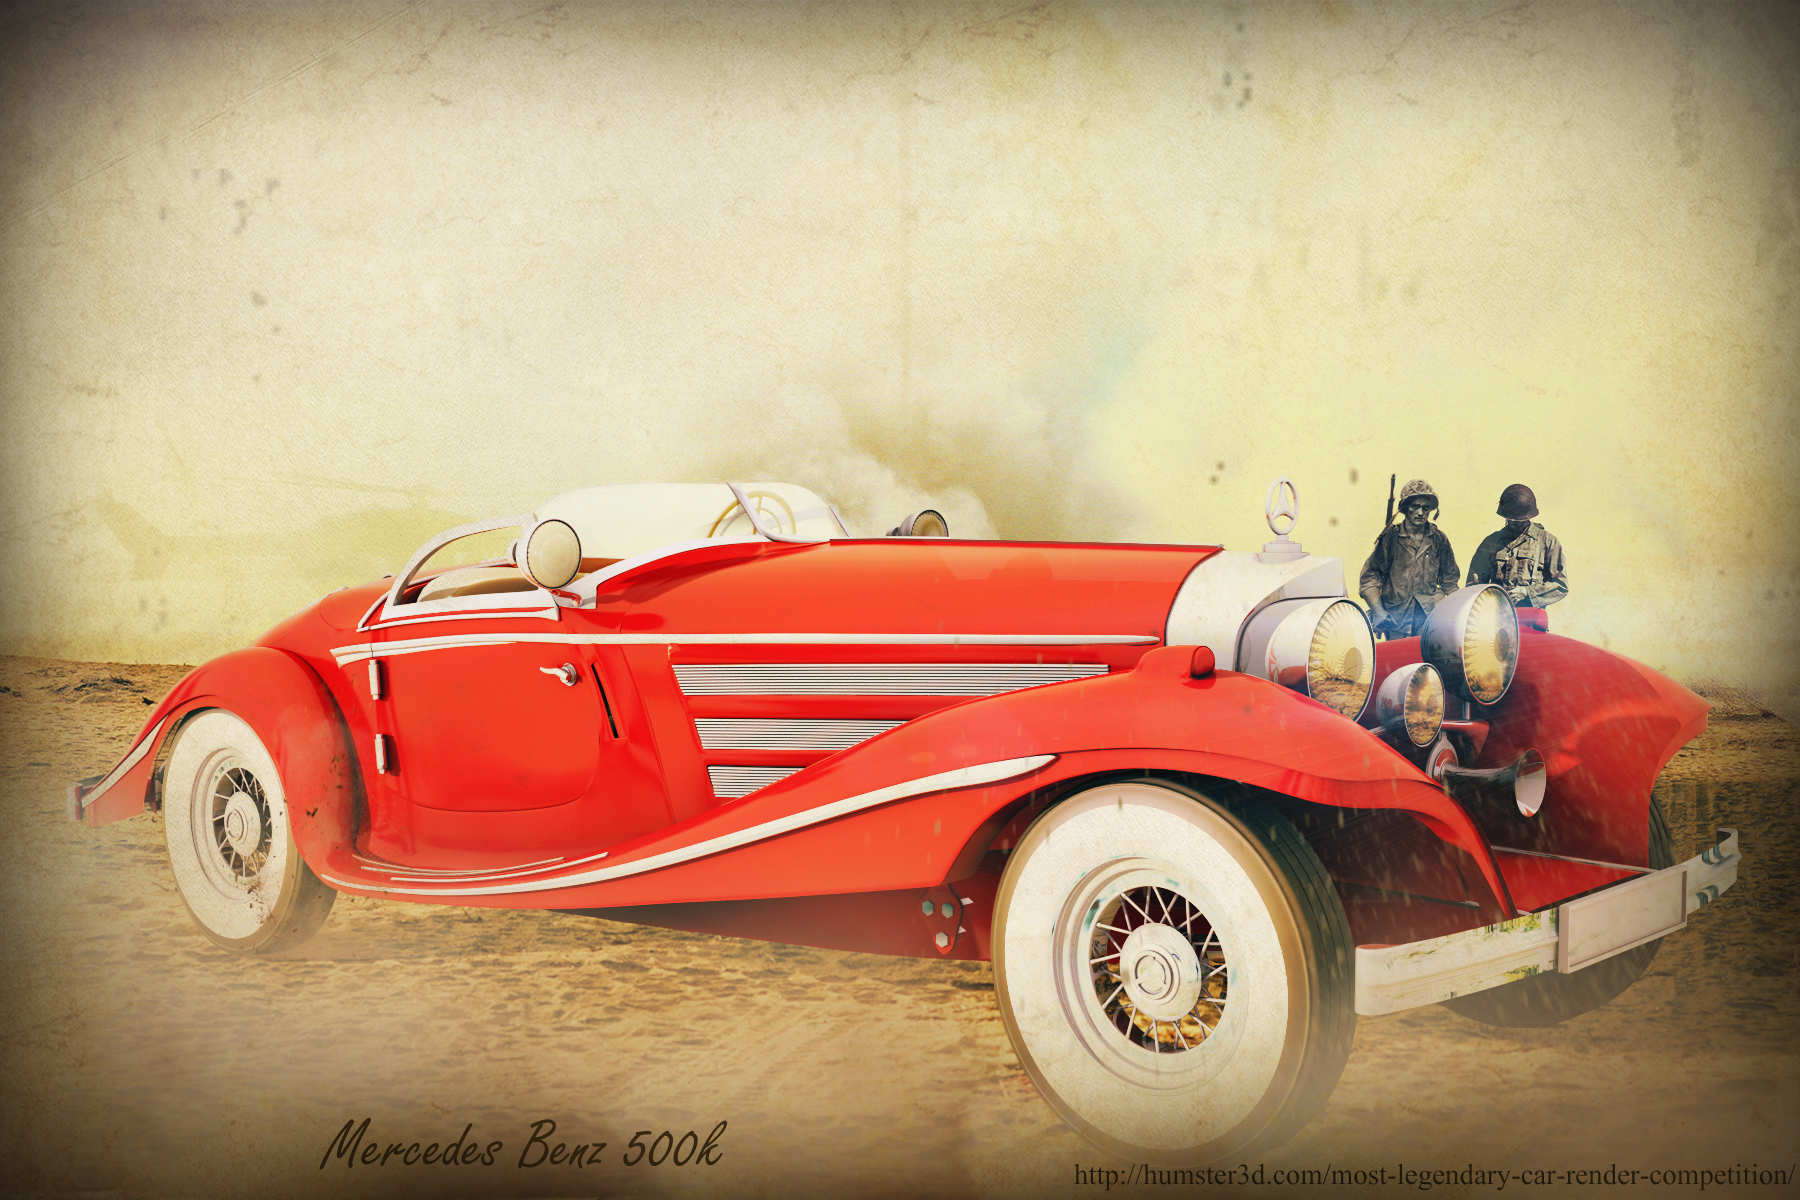 Mercedes Benz 500K Legendary Car 3d art